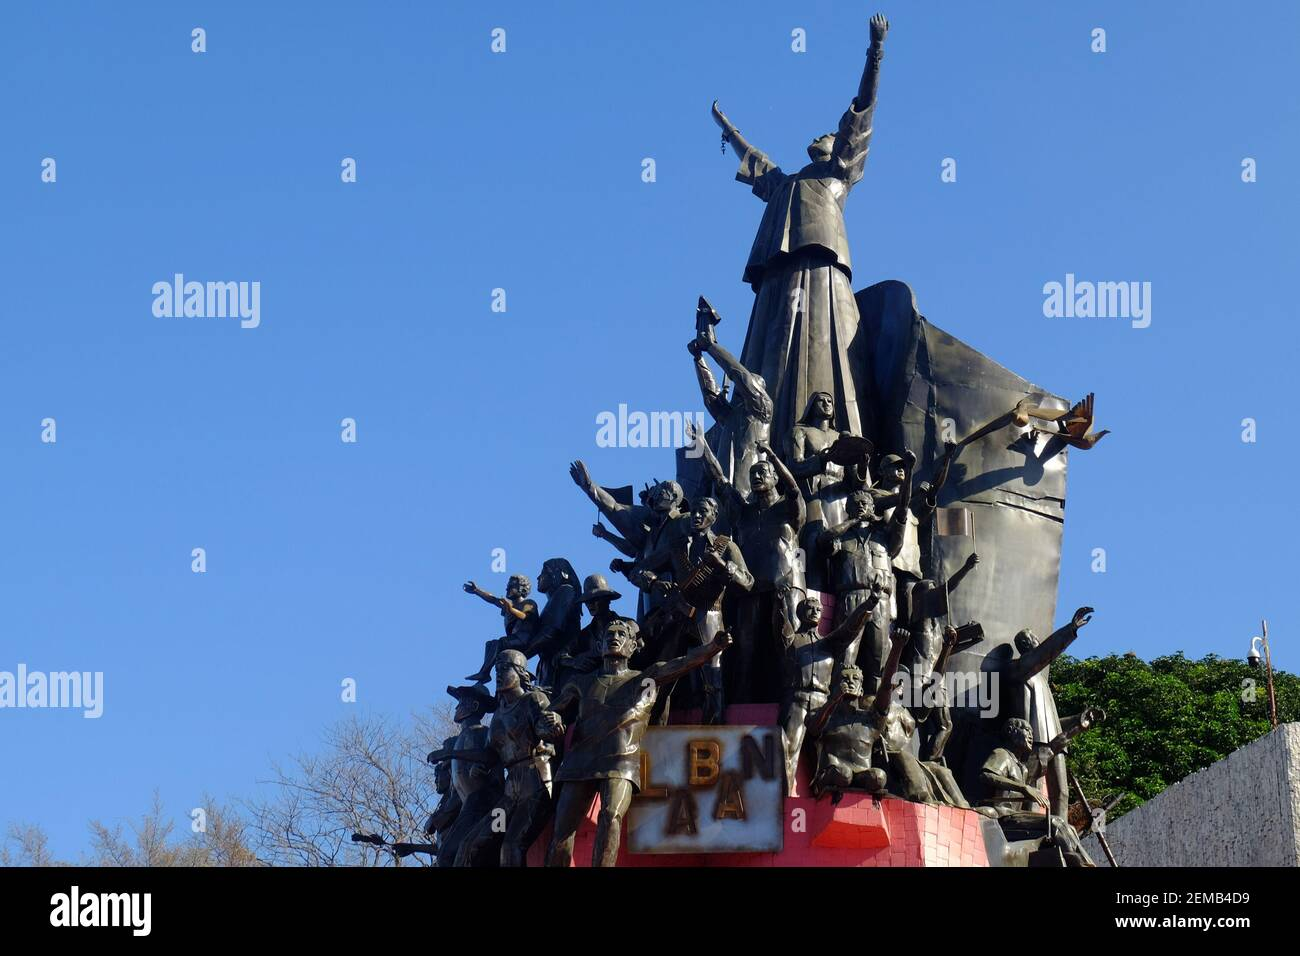 """Manila, Philippines. 25th Feb, 2021. The People Power Monument symbolizes how the people won over the dictator government of President Marcos last February 1986. Today is the 35th anniversary of EDSA revolution with its theme of """"EDSA 2021: Kapayapaan, Paghilom, Pagbangon (Peace, Healing, Recovery), to reflect on the national efforts in the face of COVID-19 pandemic. Credit: Majority World CIC/Alamy Live News Stock Photo"""